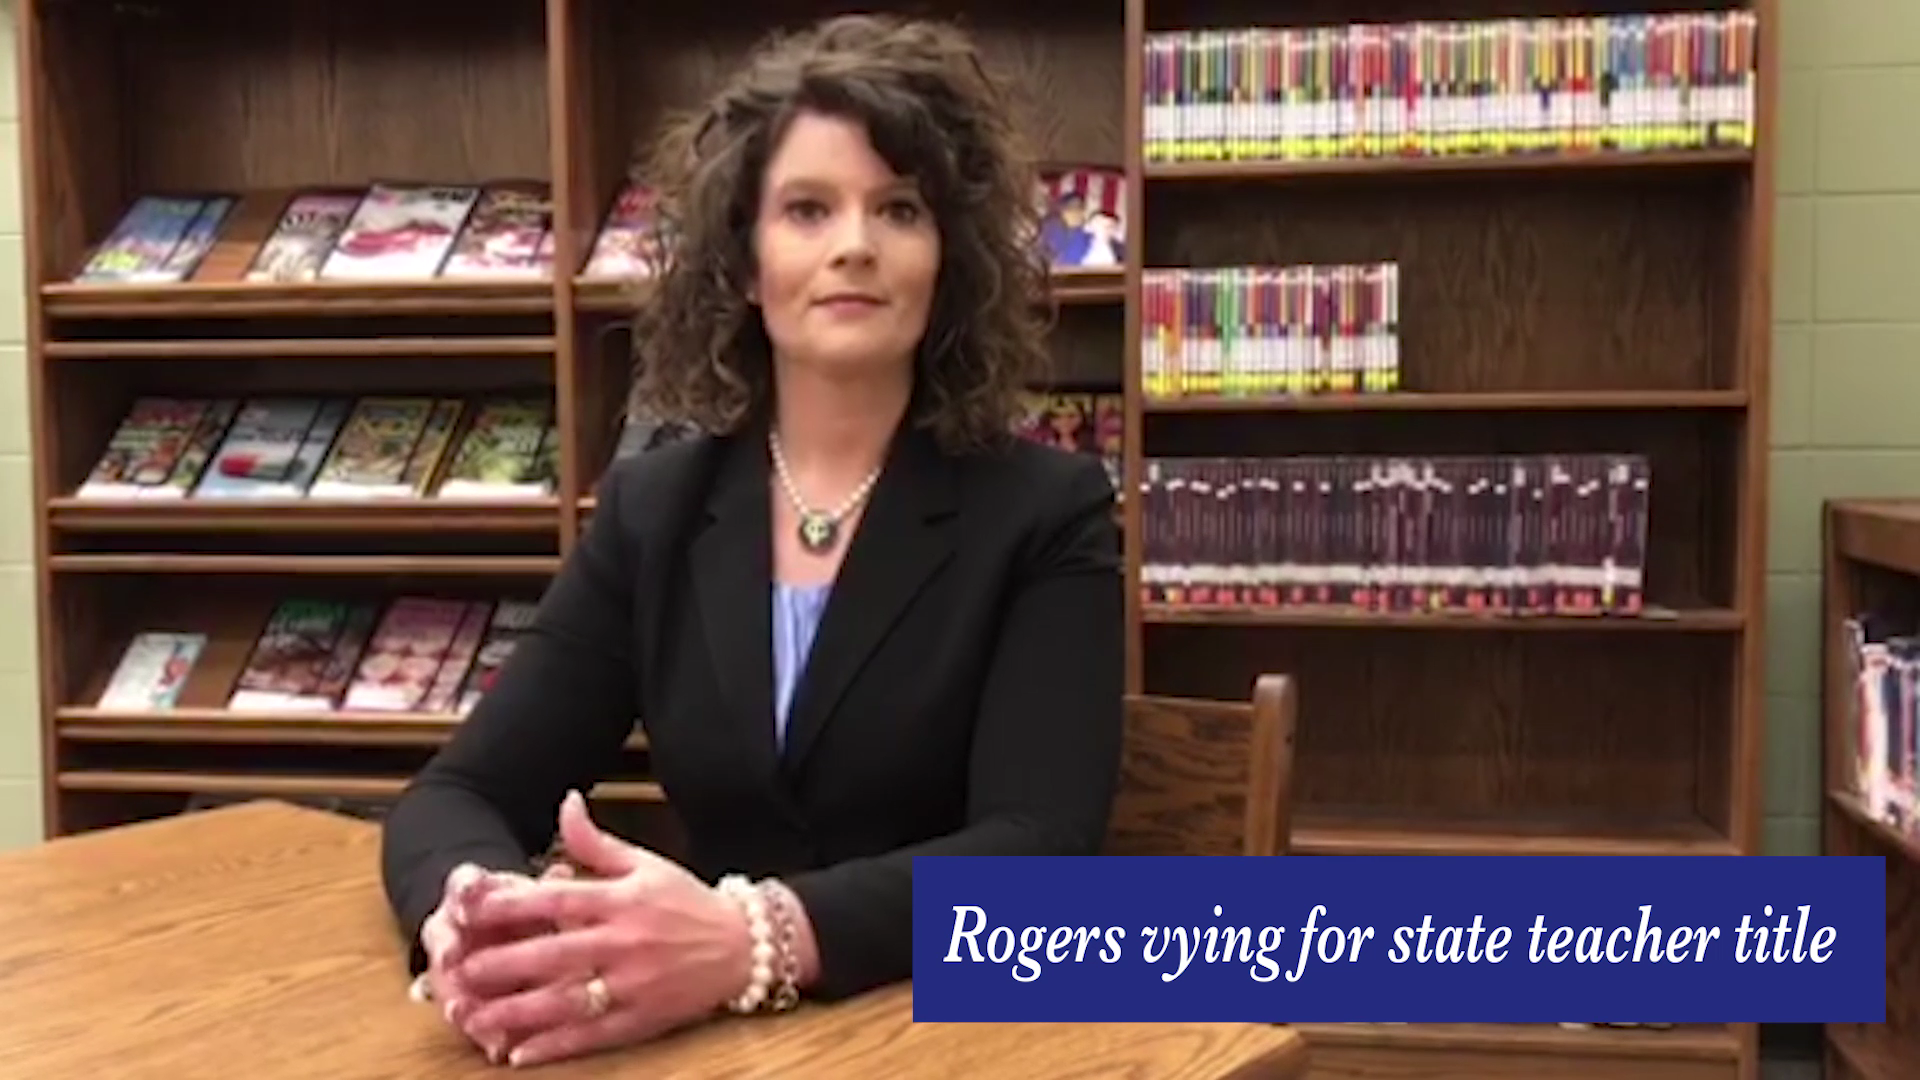 Thomas County Teacher of the Year vying for state title